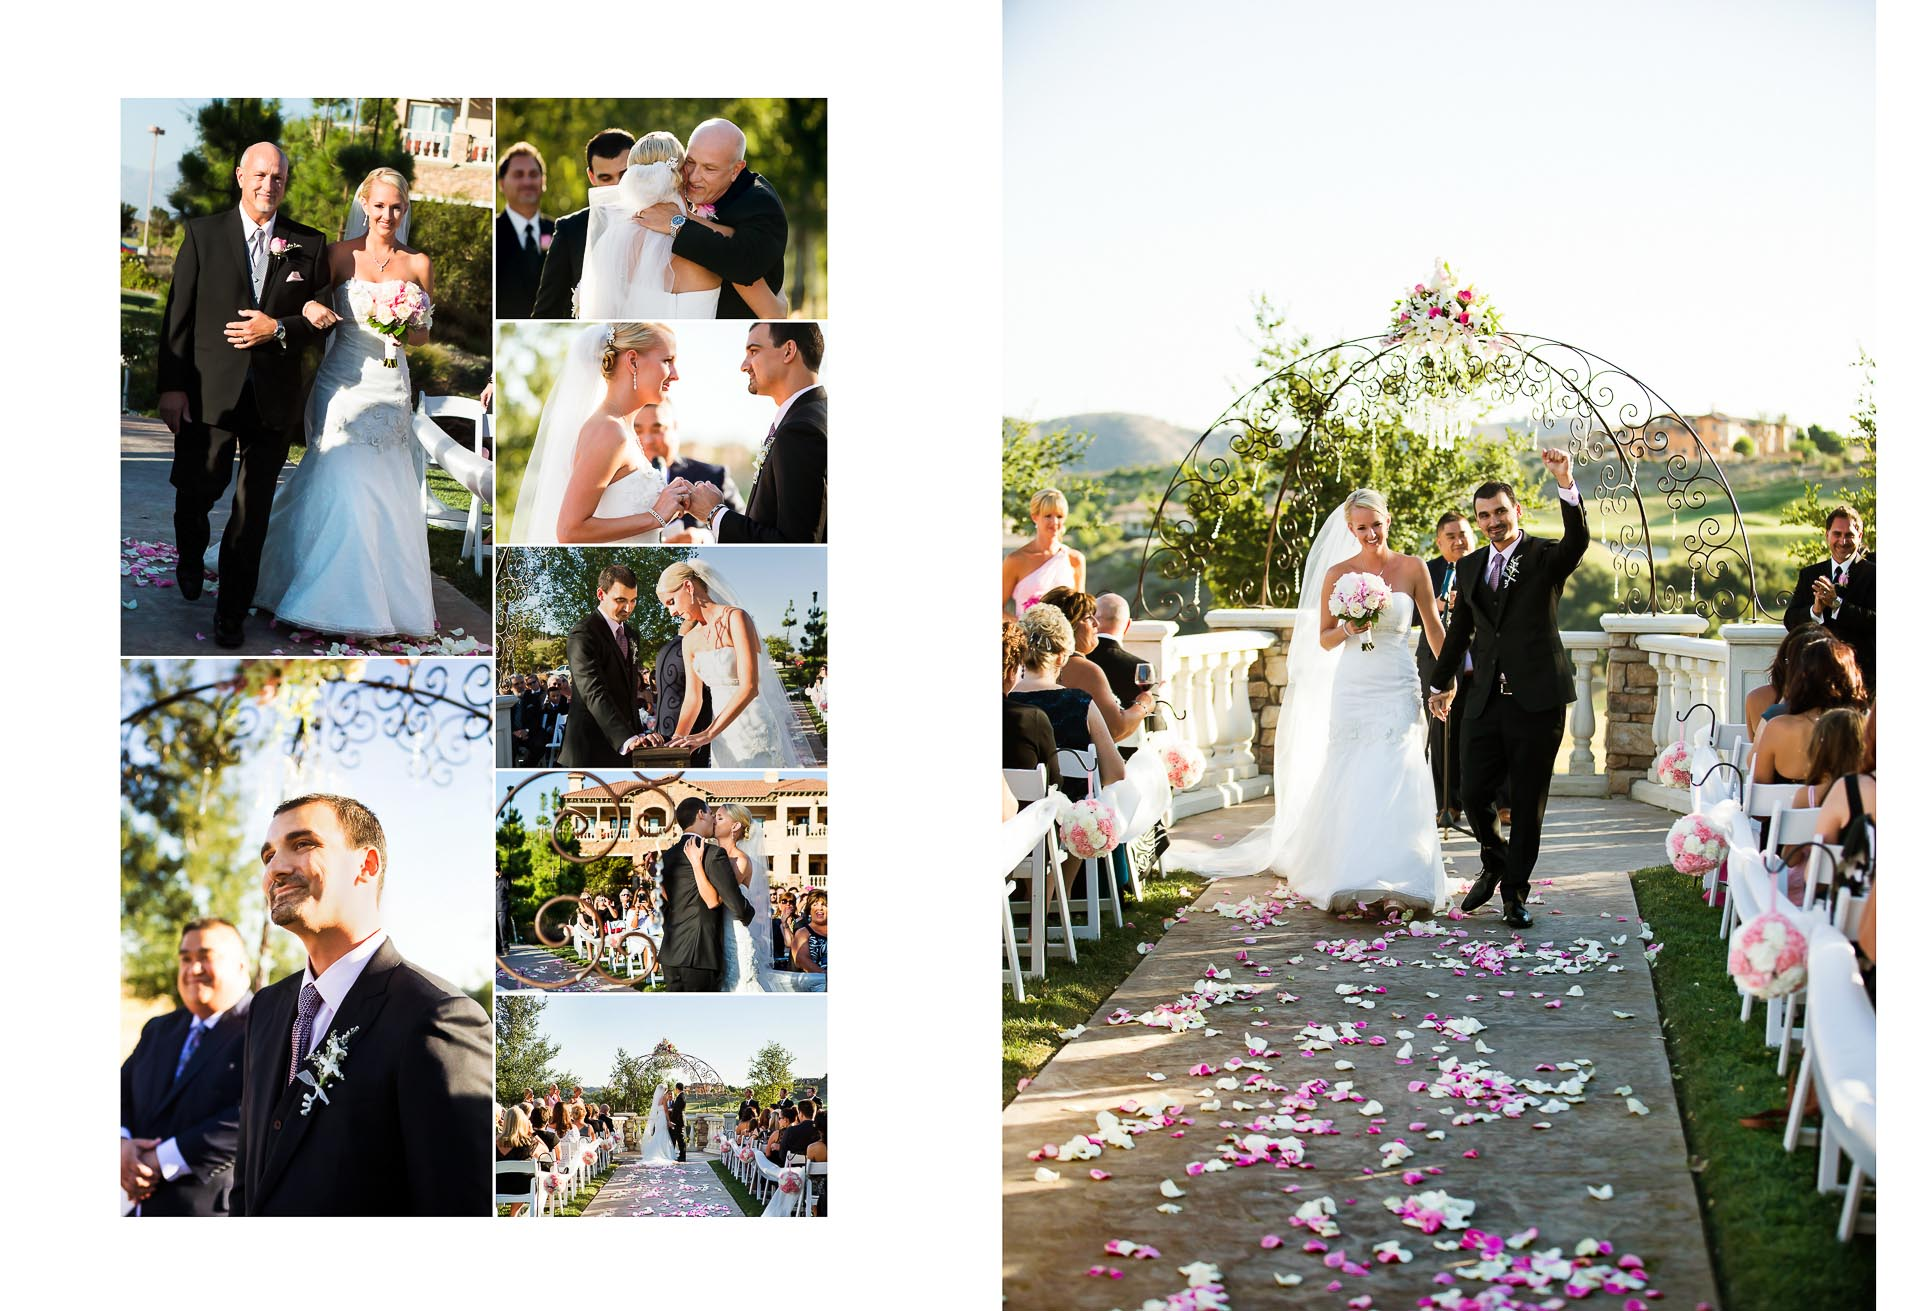 chino hills wedding photography